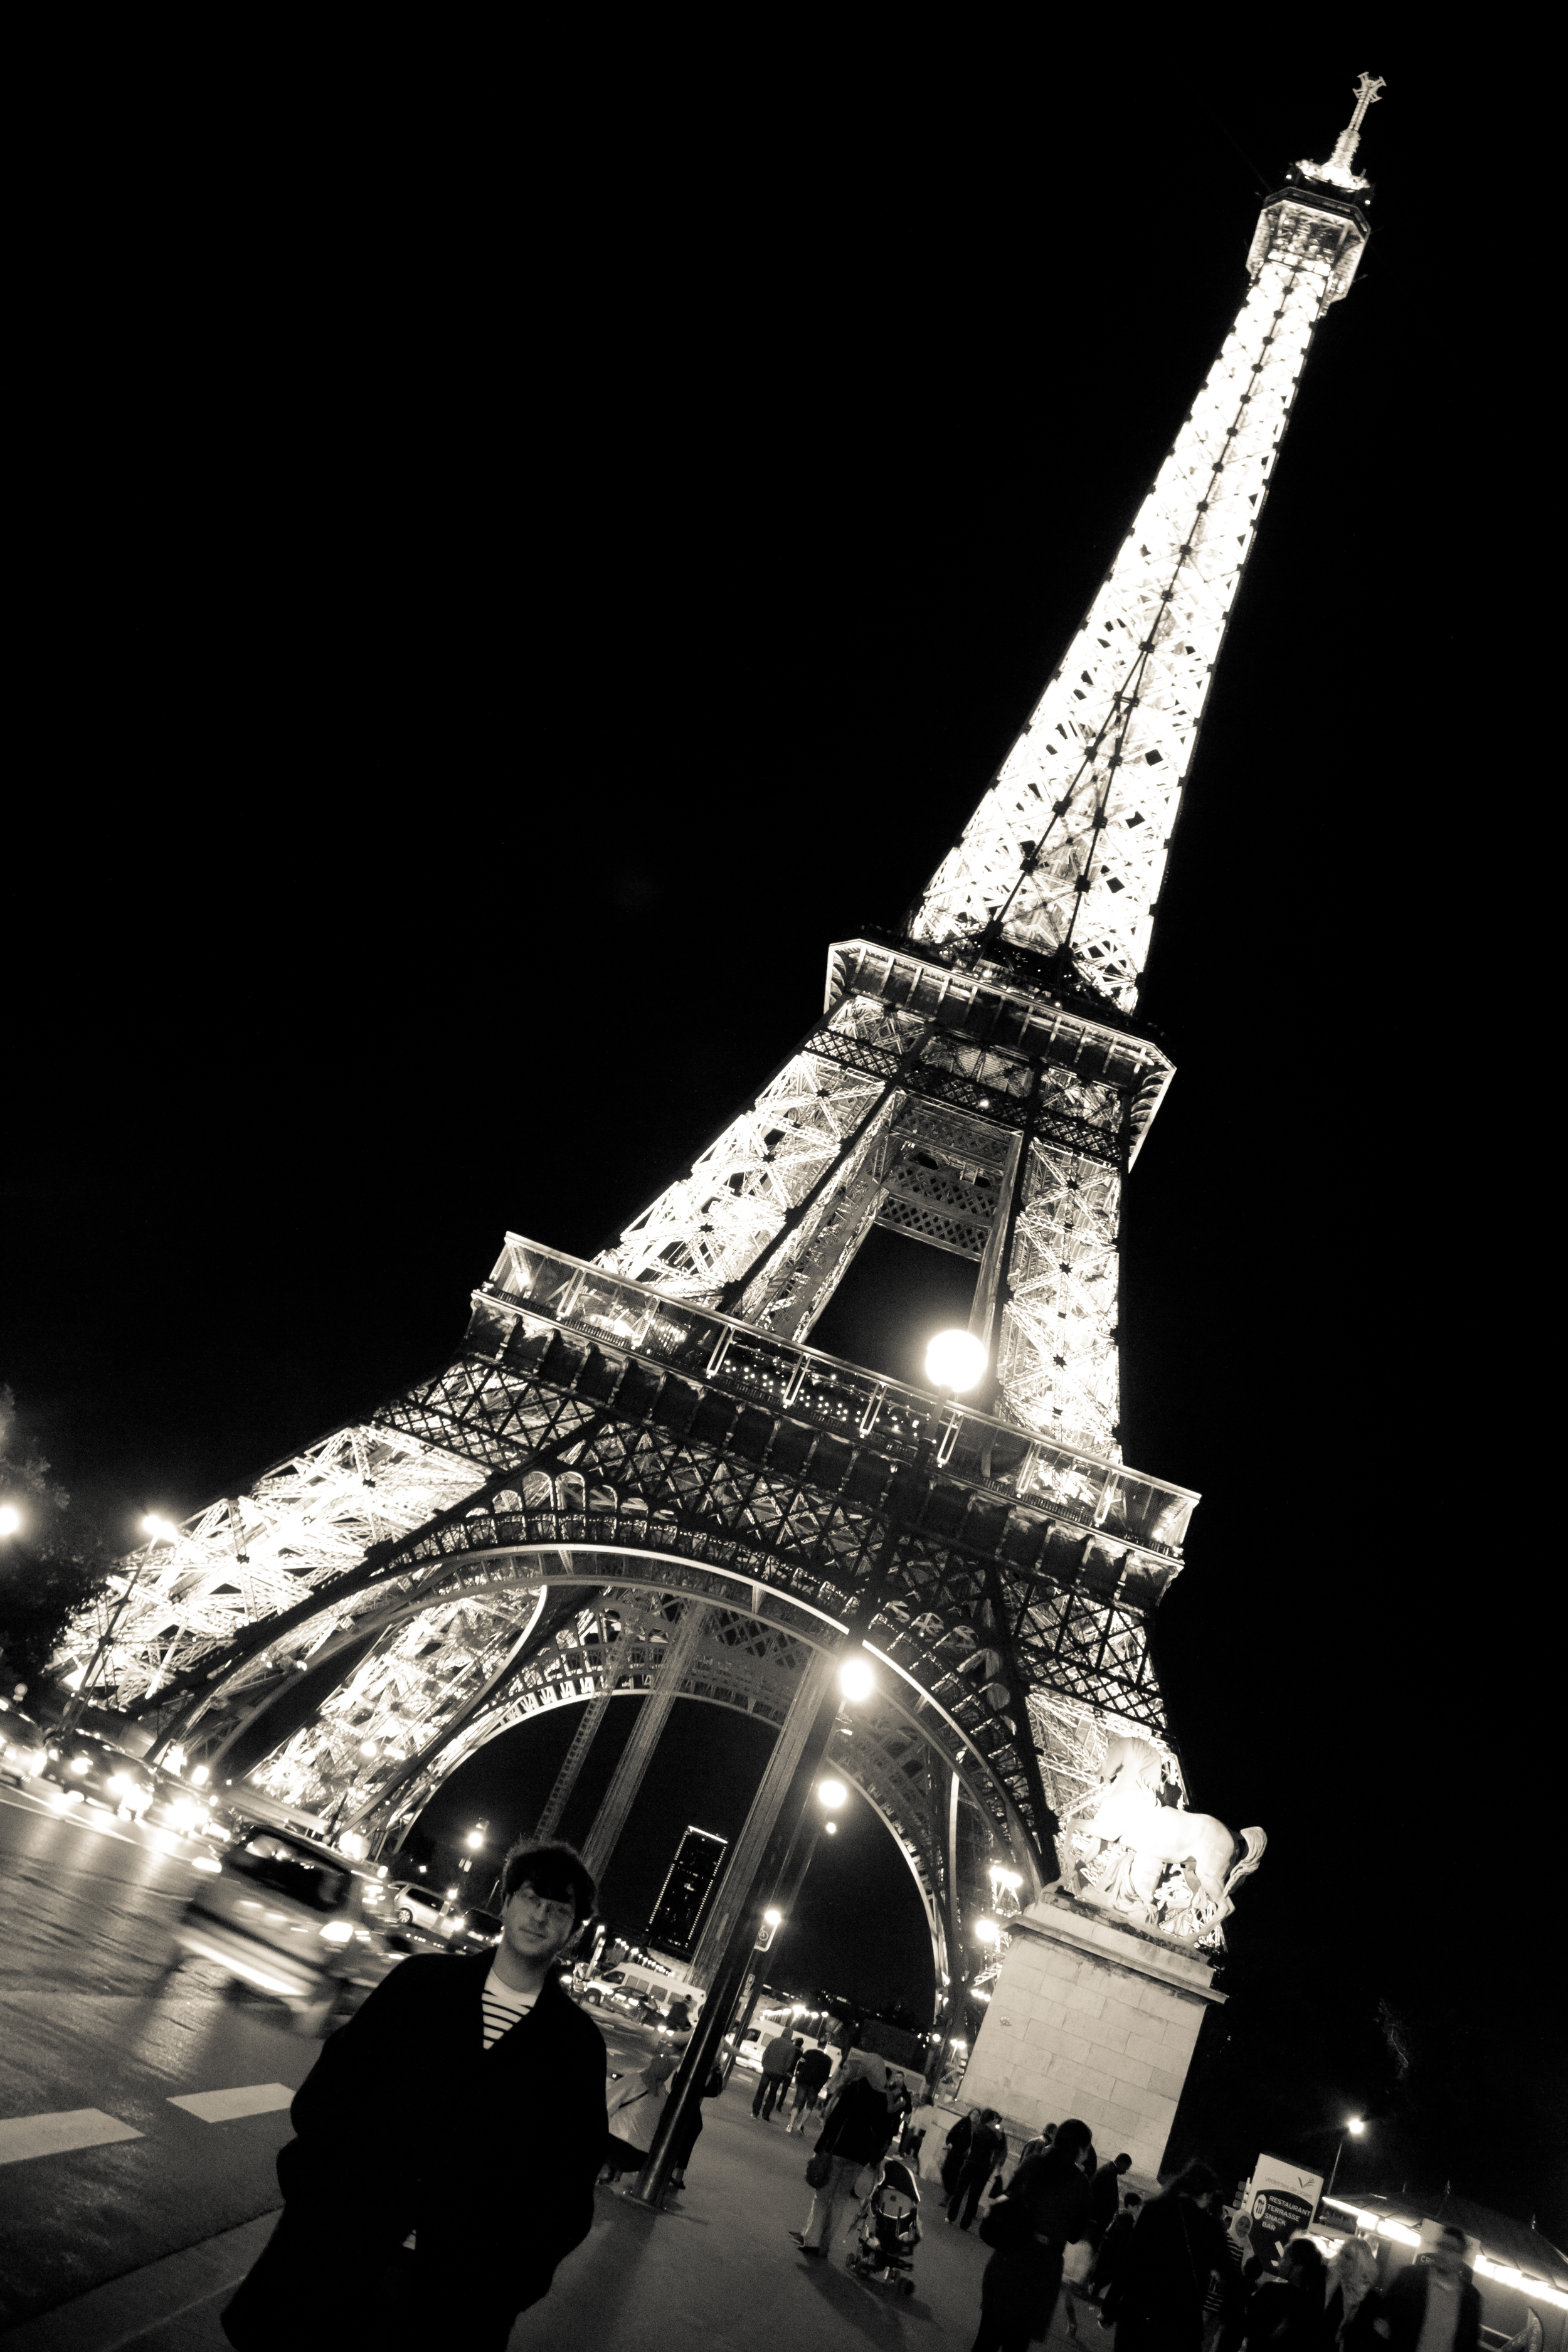 This is the  Eiffel Tower . The tower is a famous place in Paris, France. Do you see Cory under the  Eiffel Tower ?